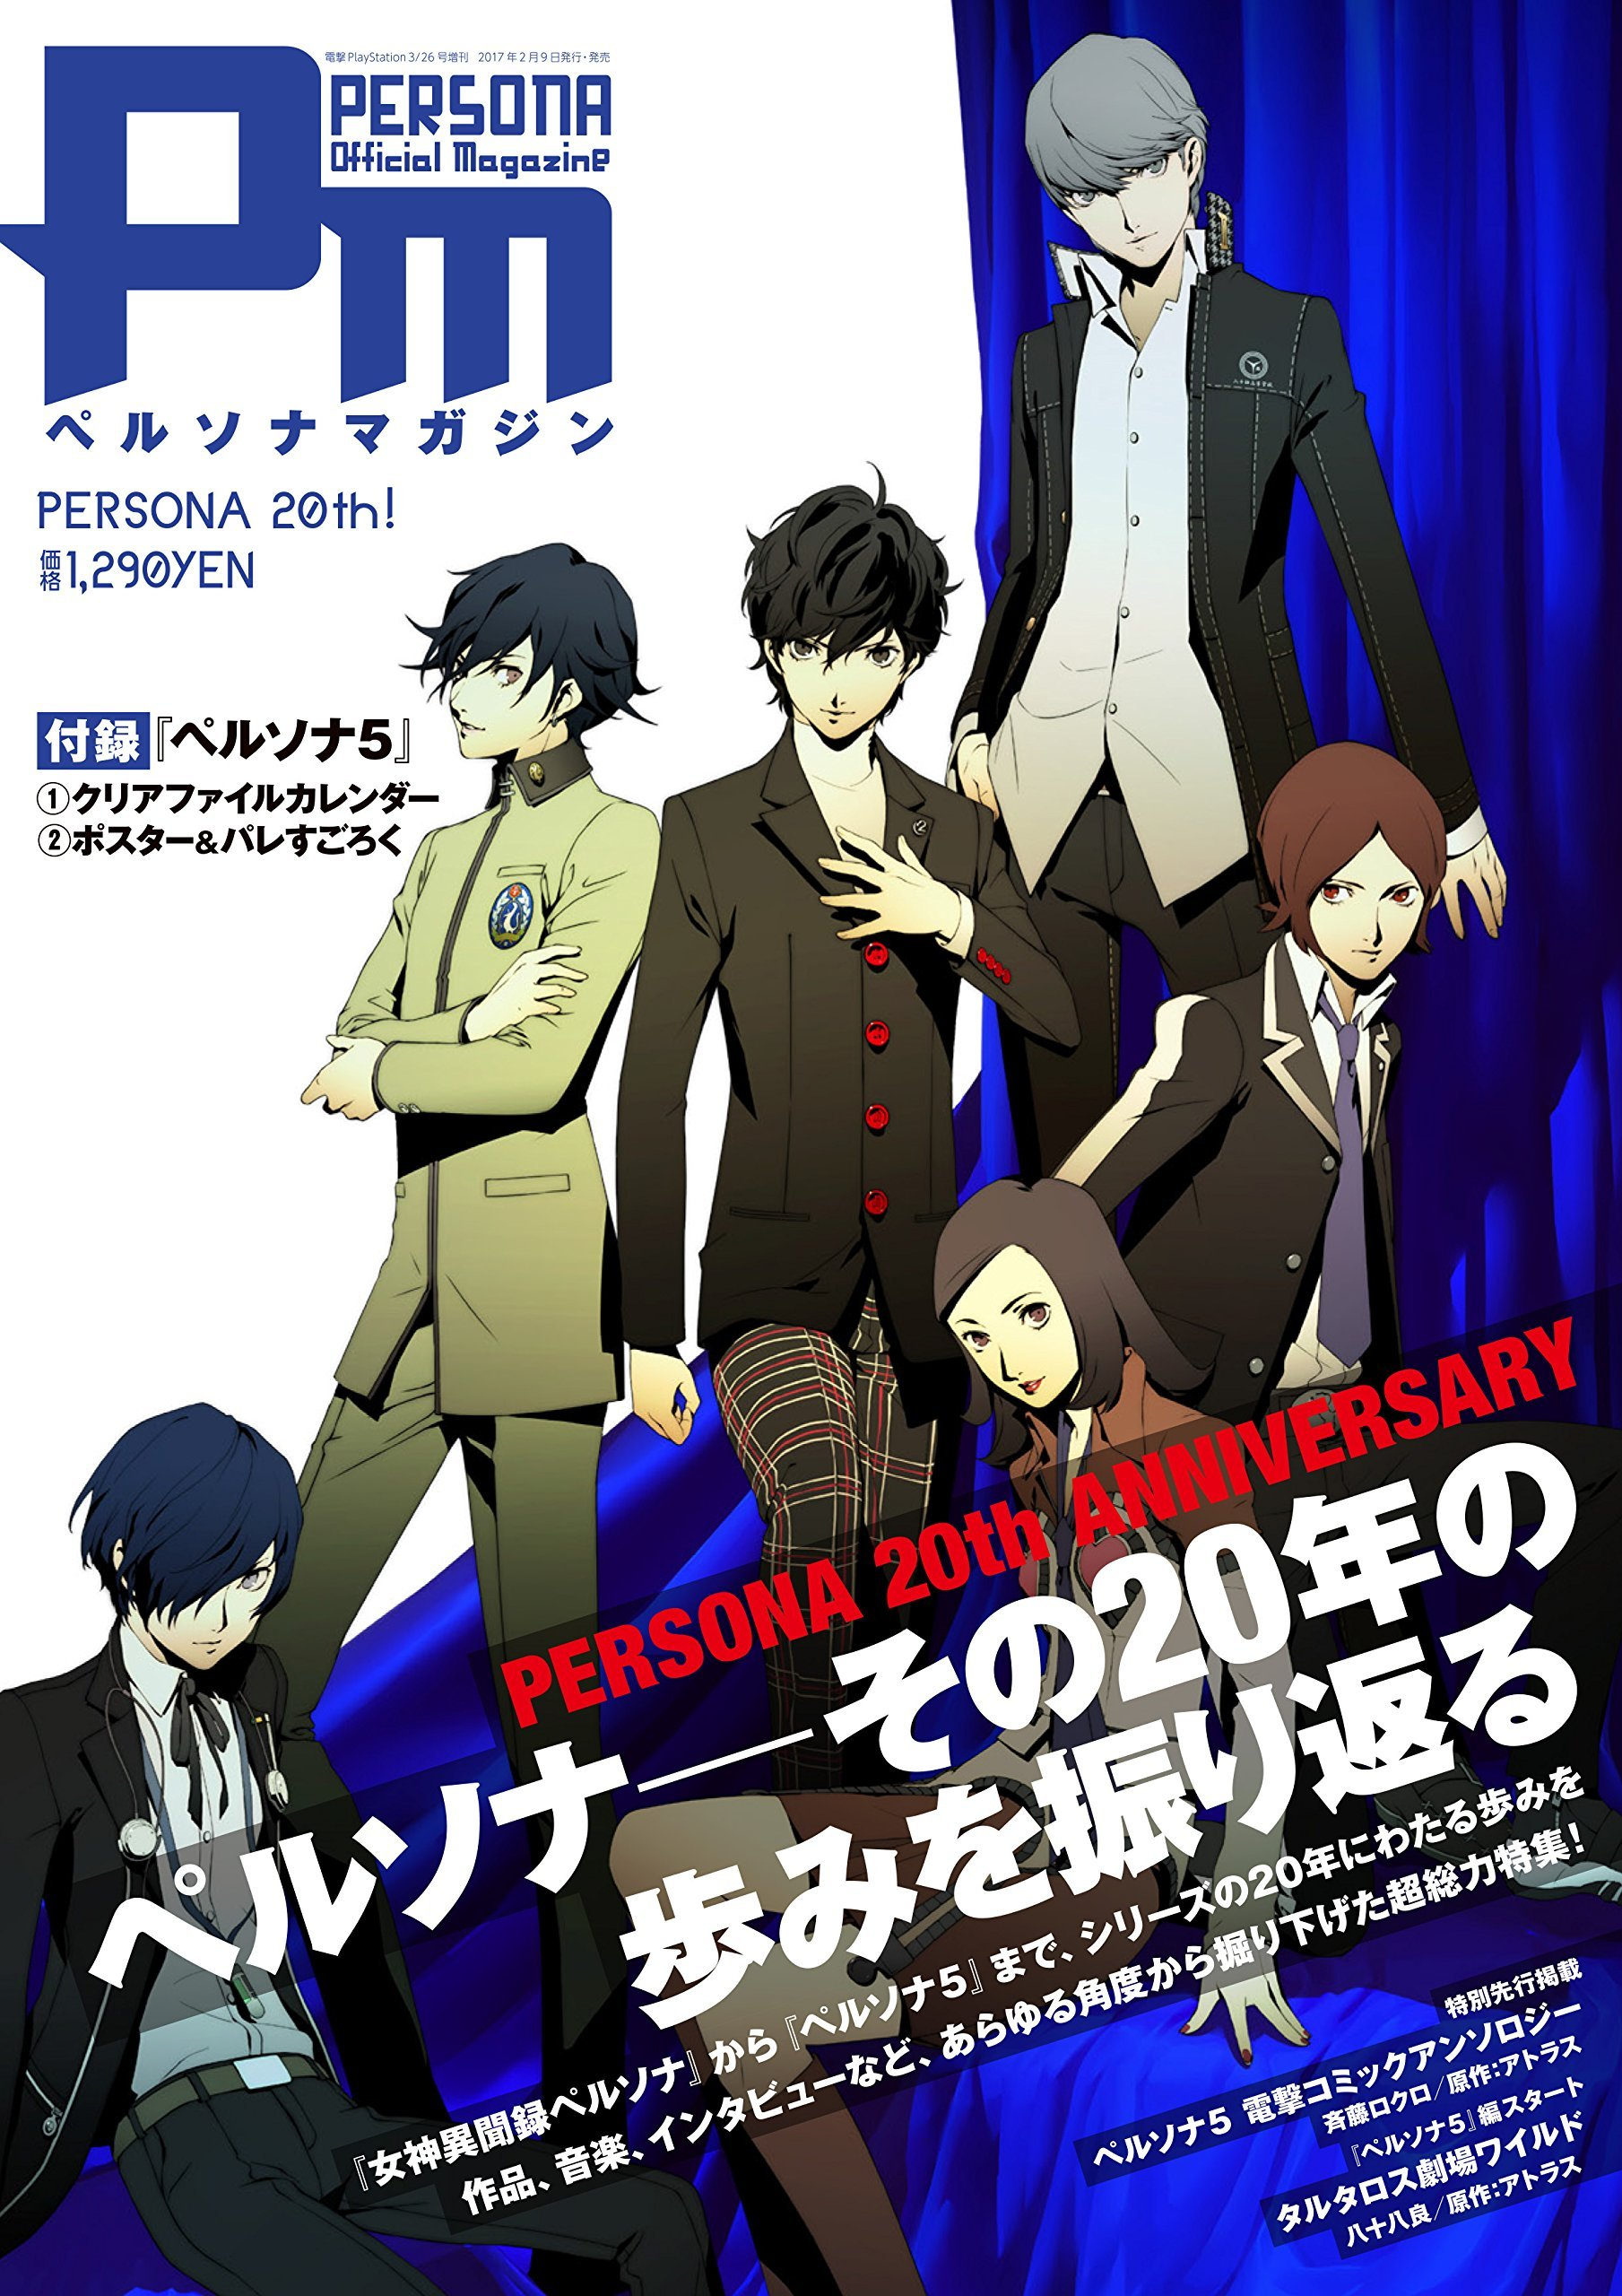 Persona Magazine 20th Issue Cover Art